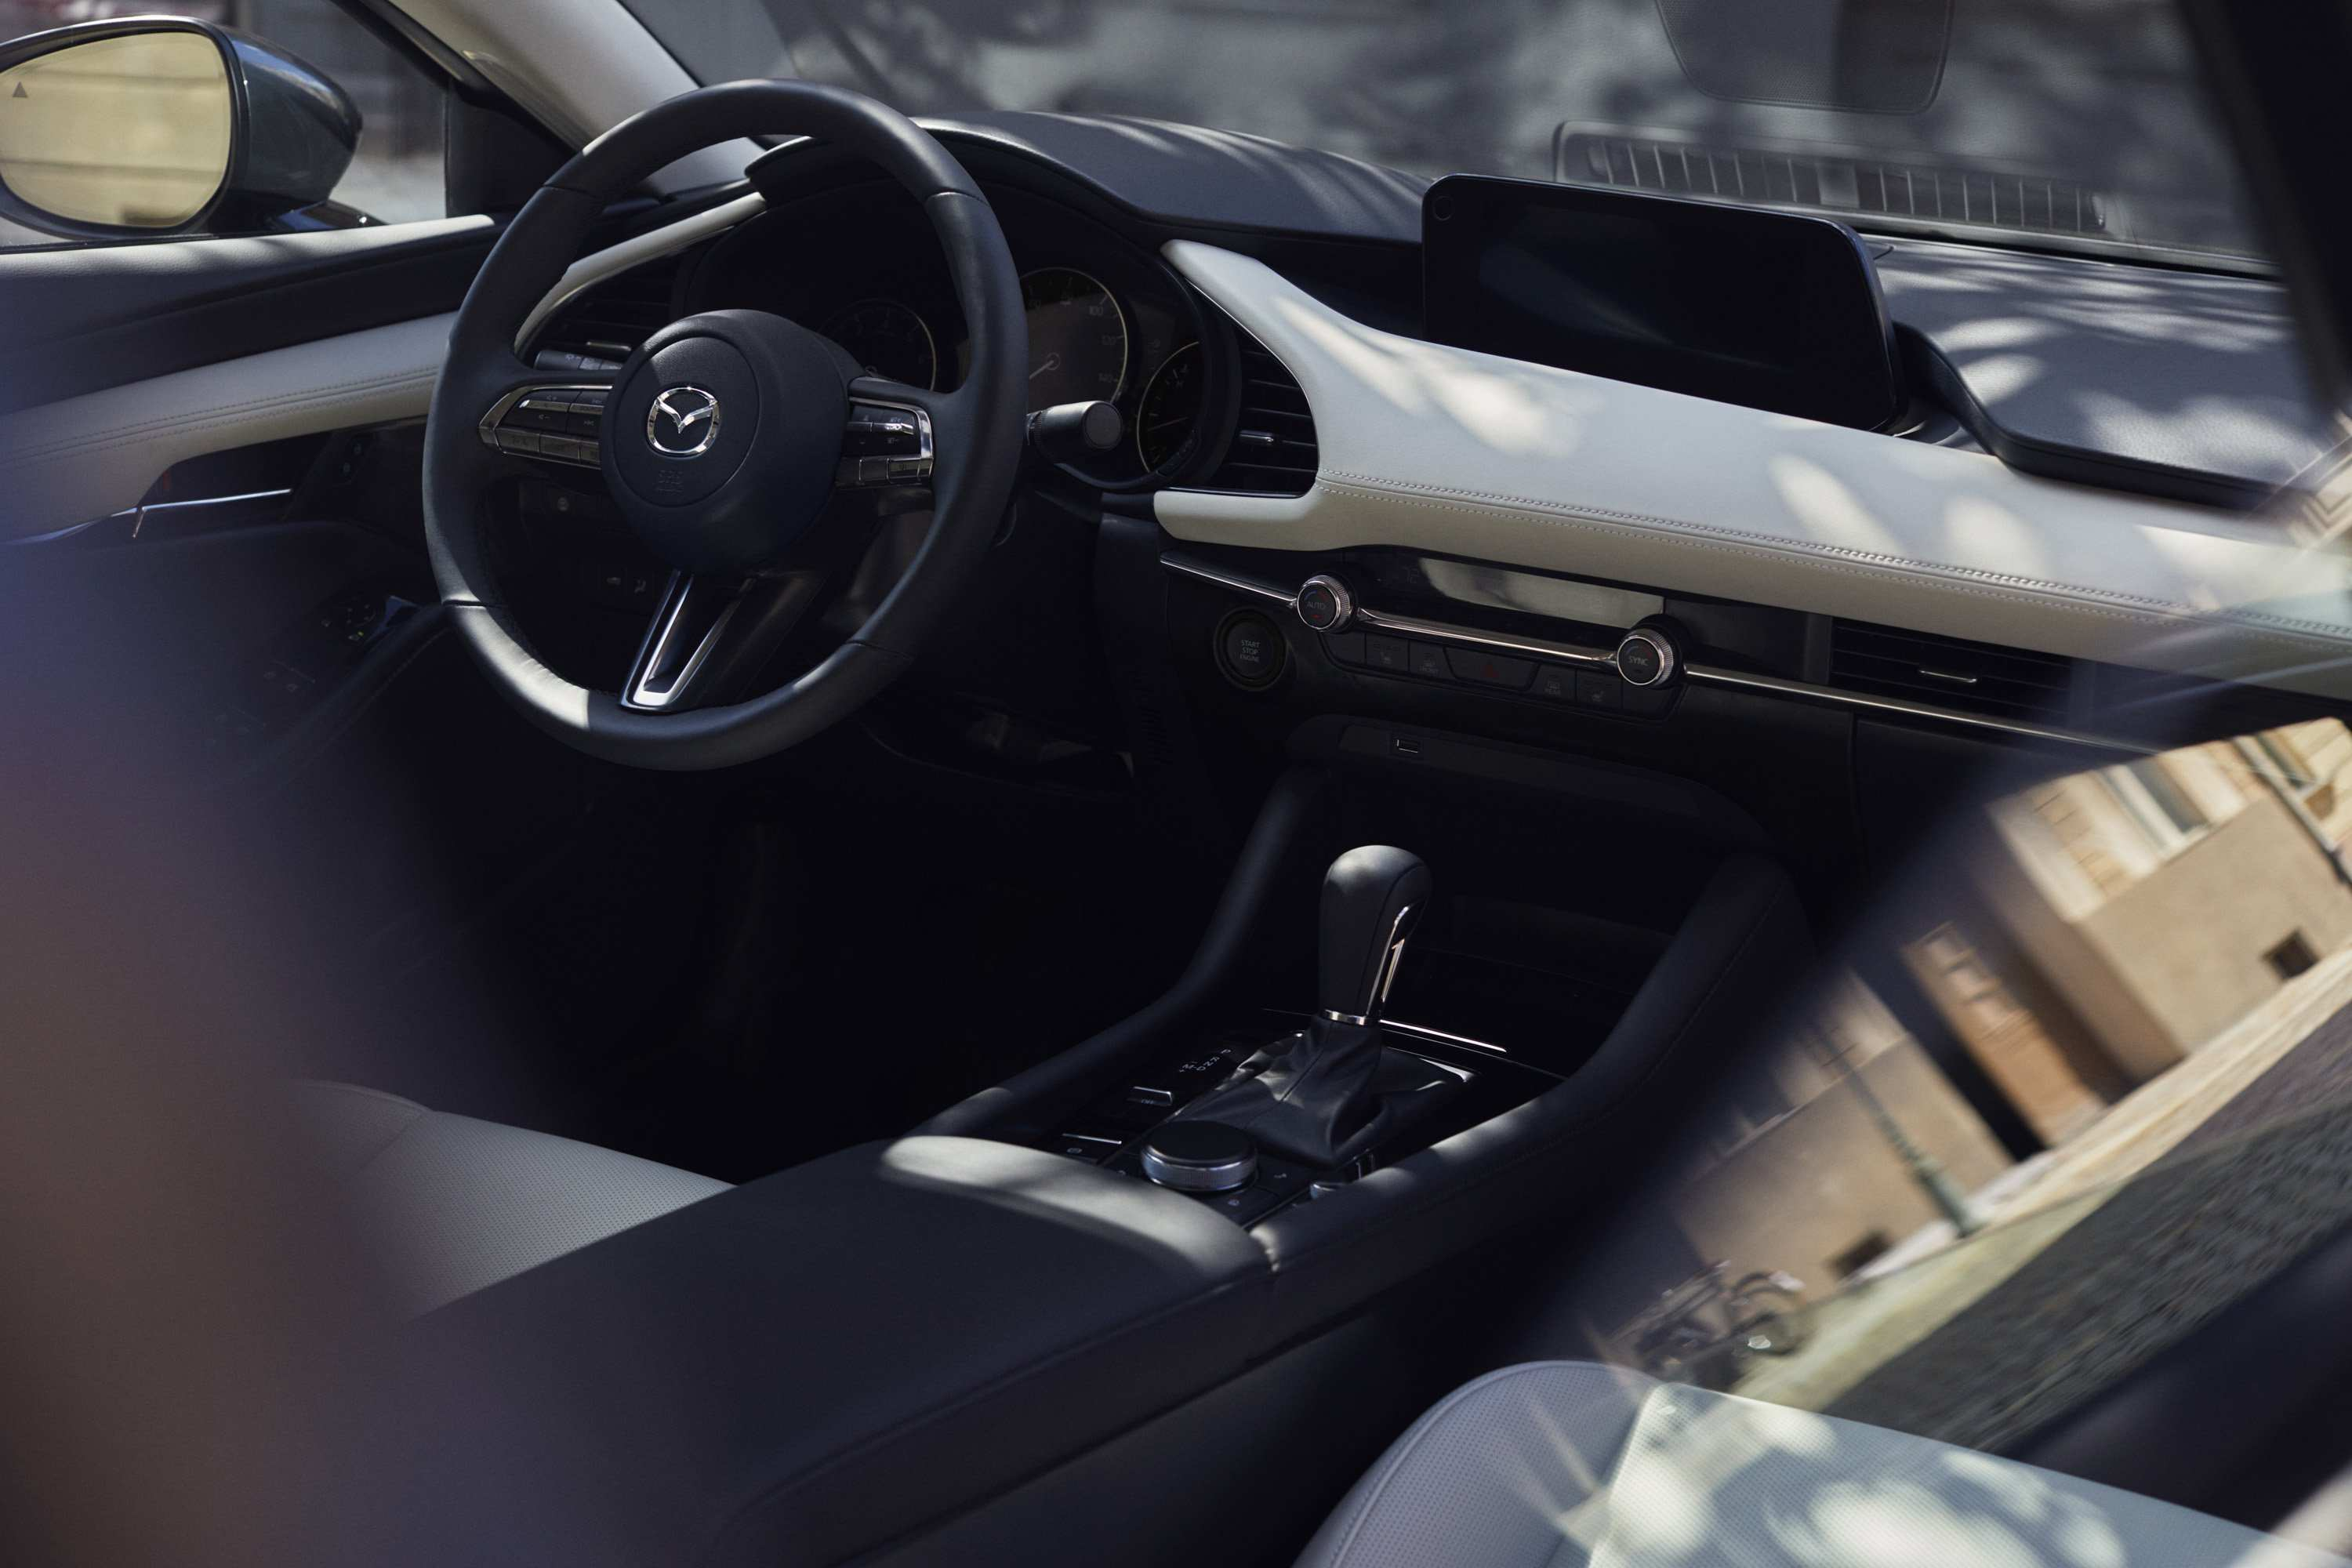 39 All New Mazda 3 2019 Interior New Concept for Mazda 3 2019 Interior